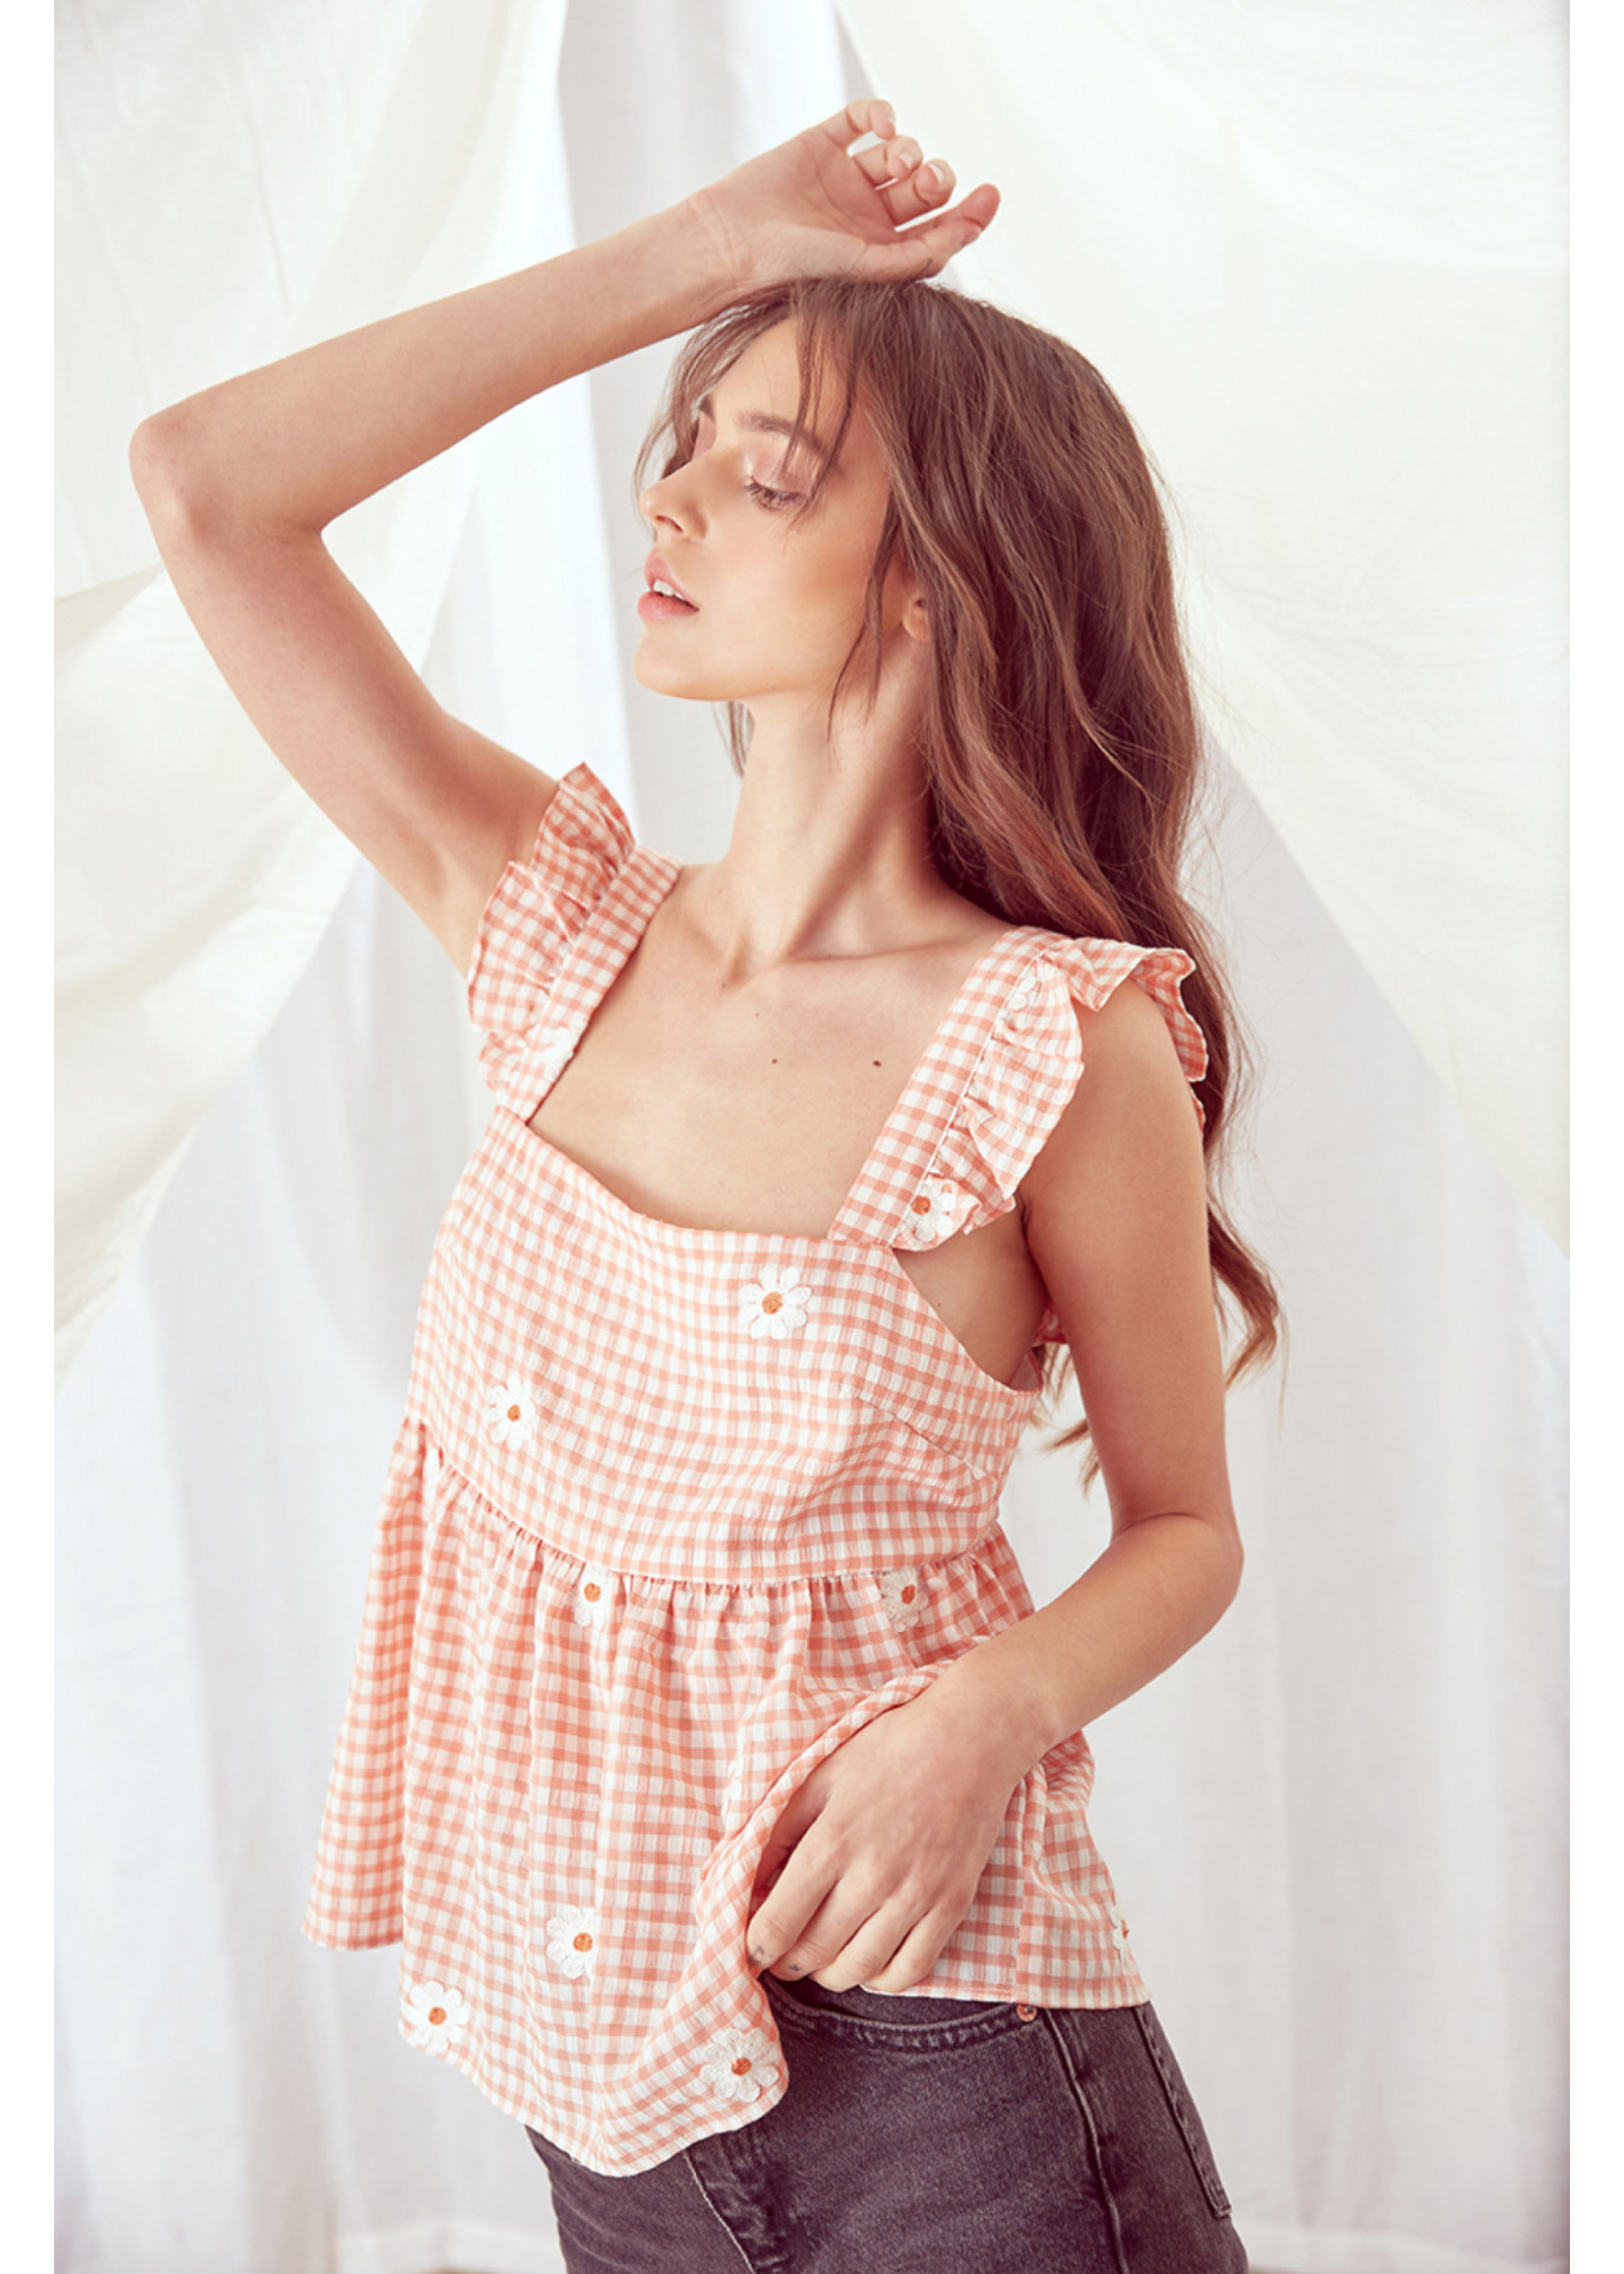 Storia Daisy and Gingham Print Babydoll Top - JT3247